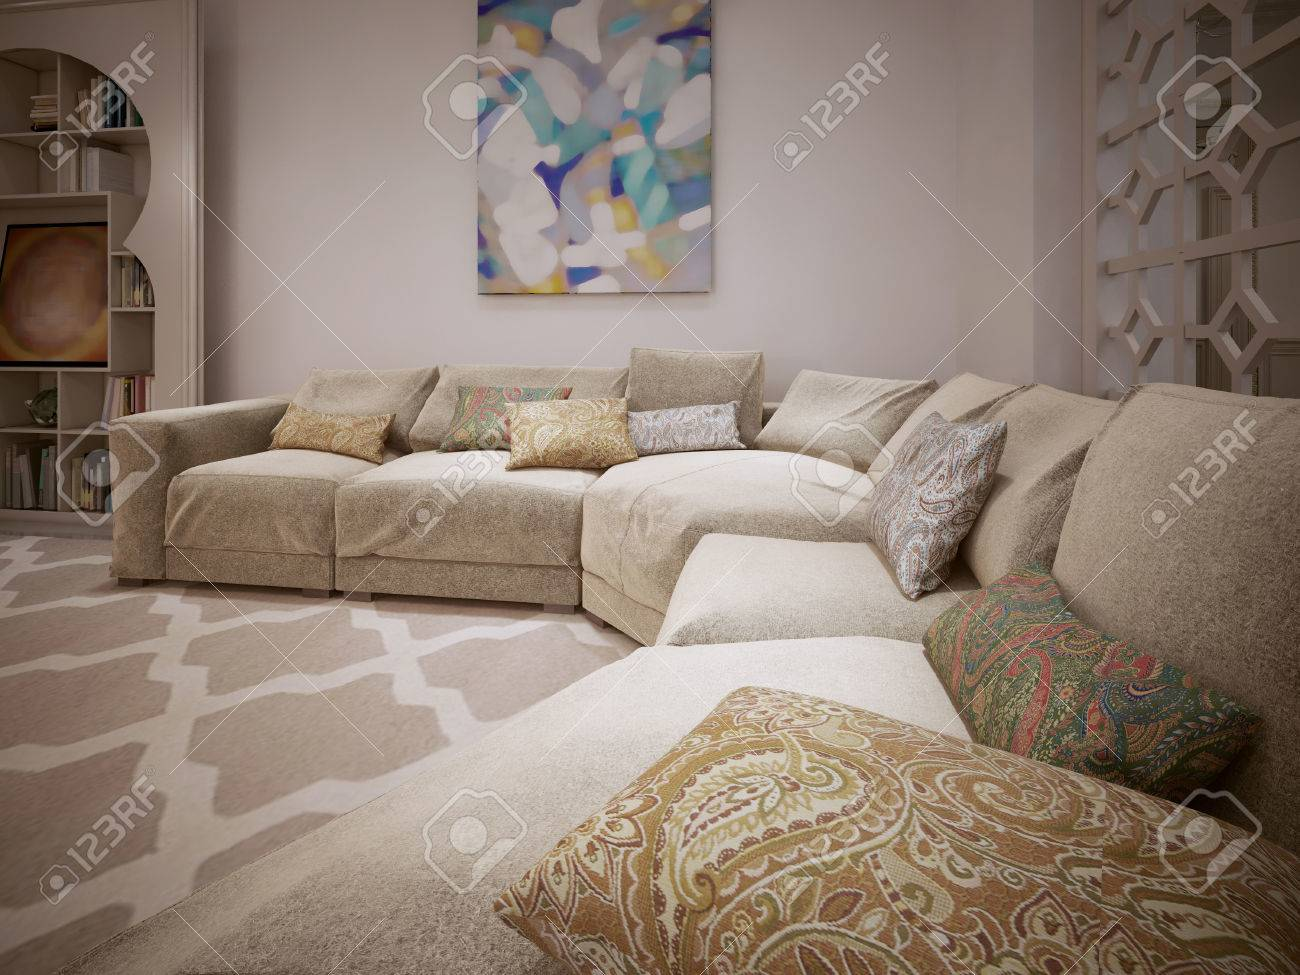 Contemporary Sofa In A Room With A Moroccan Style 3d Render